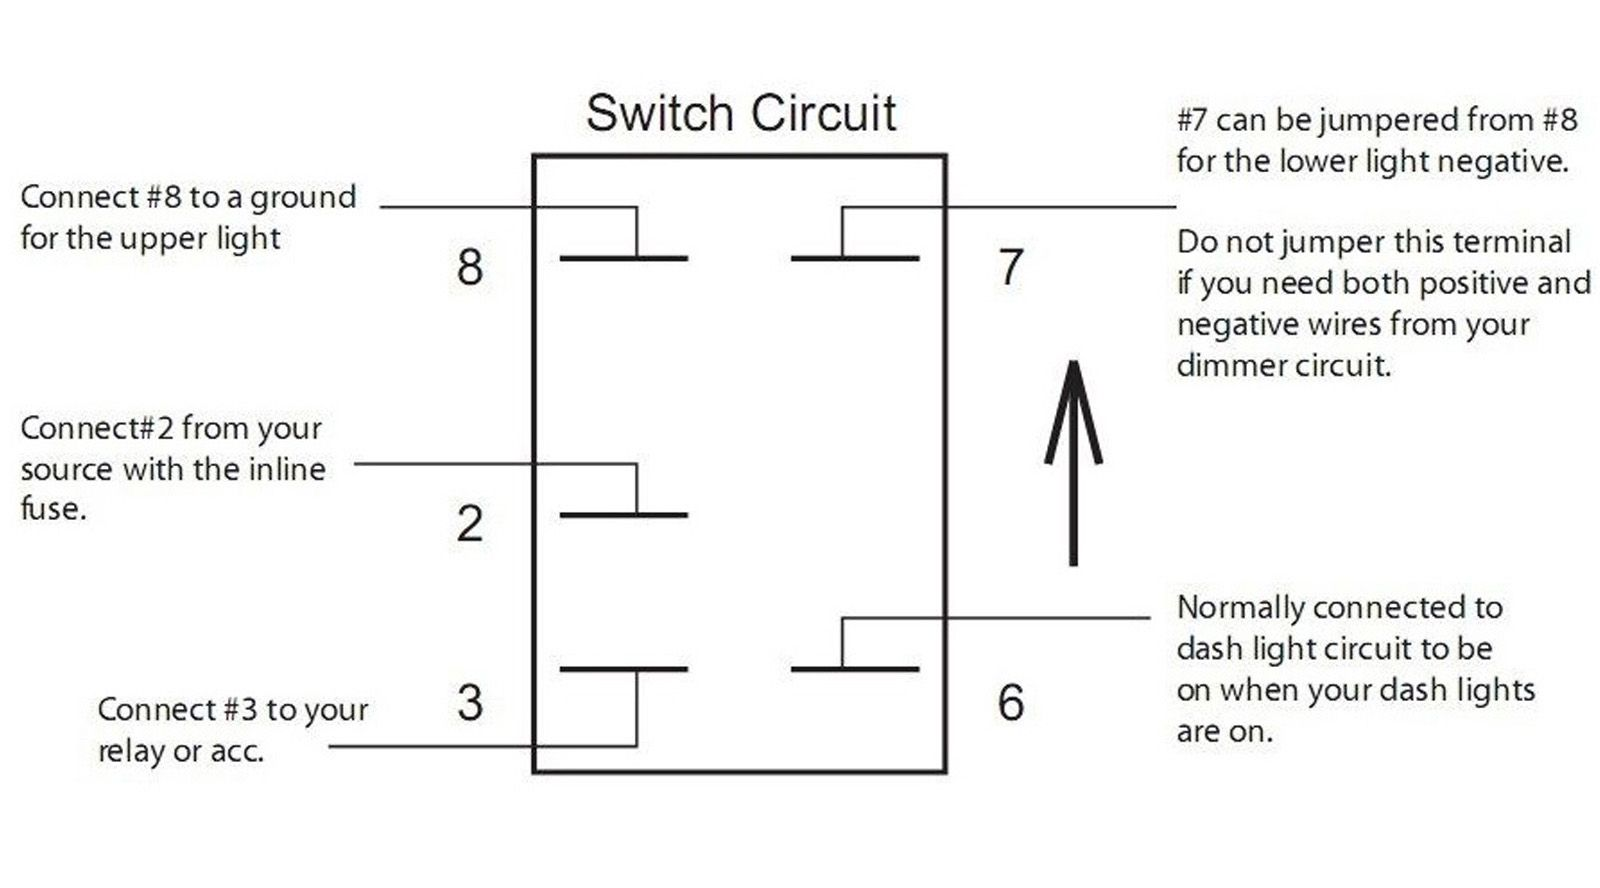 f8cad258f628b01deccc97f77c51cf52 wiring an arb switch yahoo search results yahoo canada image arb reversing camera wiring diagram at nearapp.co